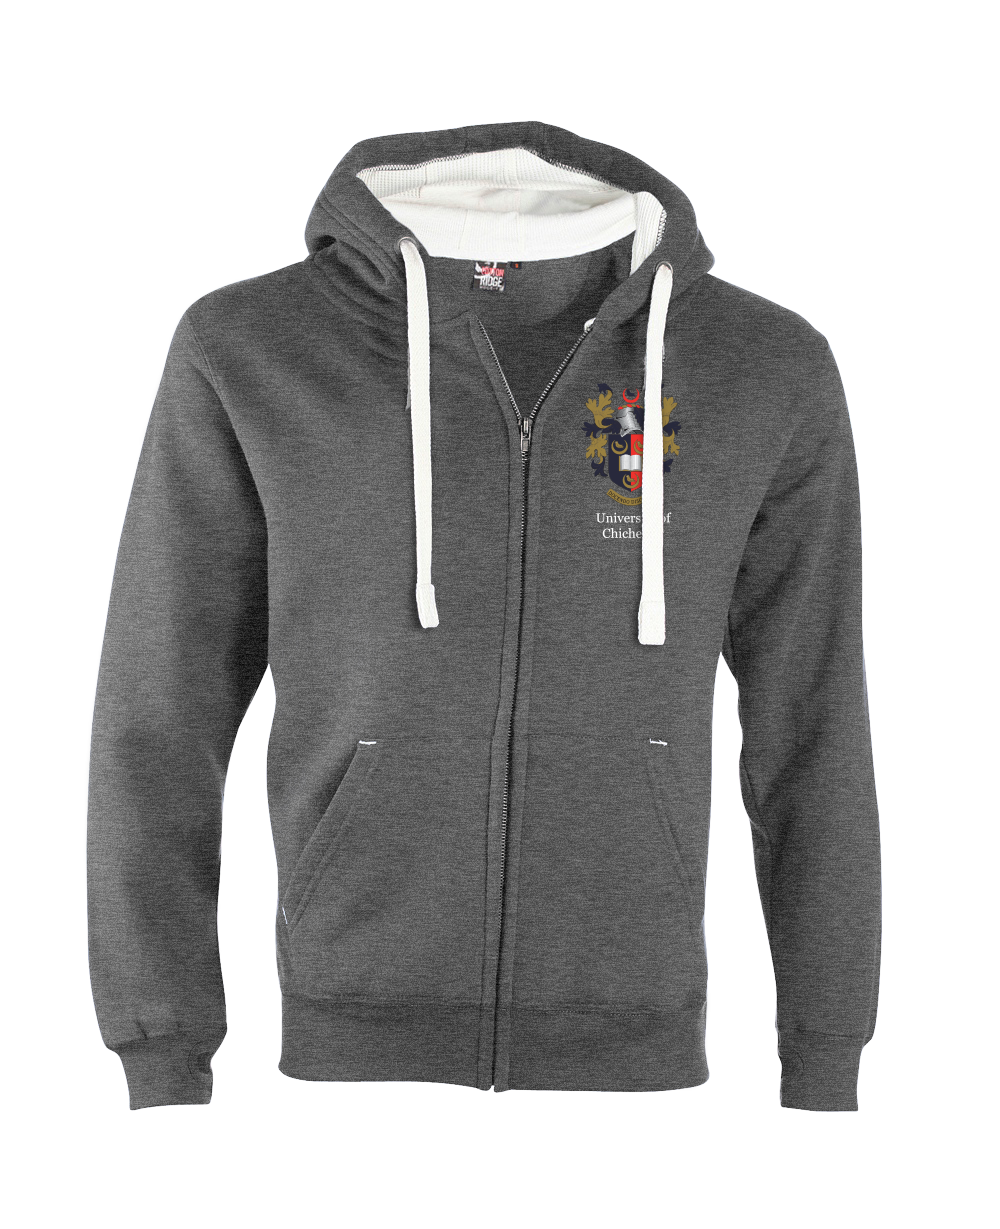 W81PF-EmbroideredCrest-Chichester University  Ultra Soft Feel Hooded Top